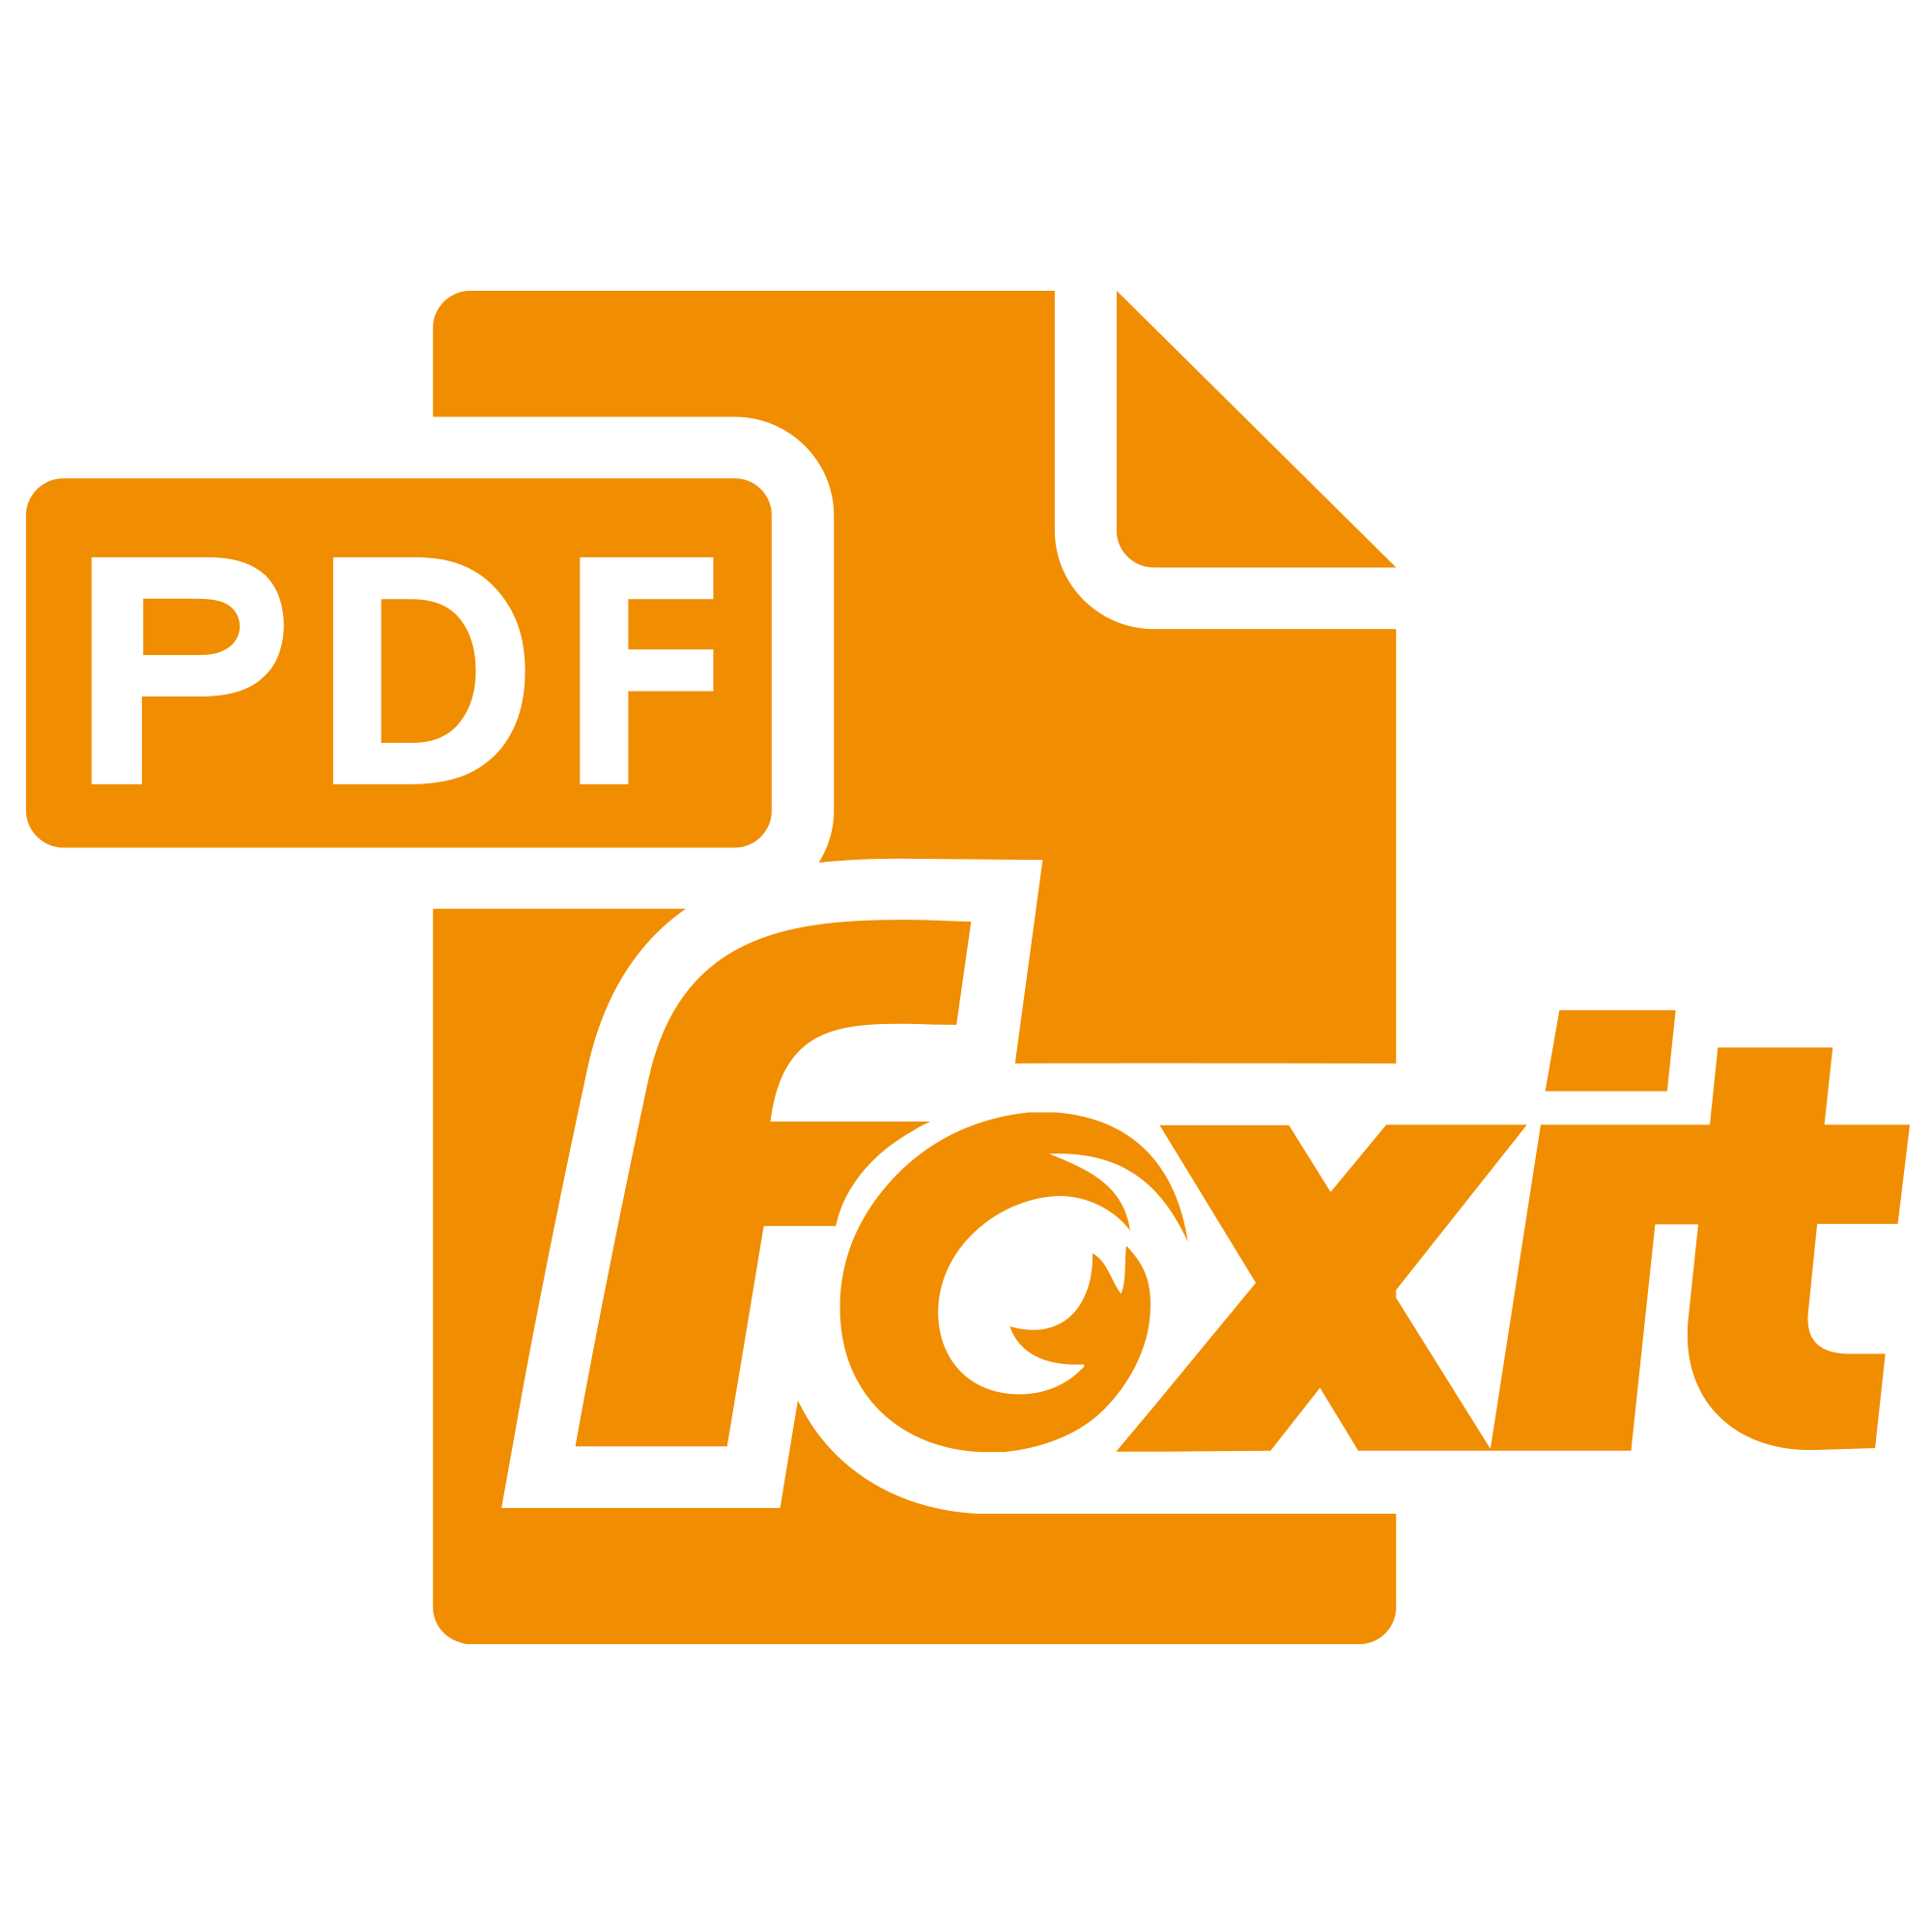 Foxit Reader - Best pdf readers